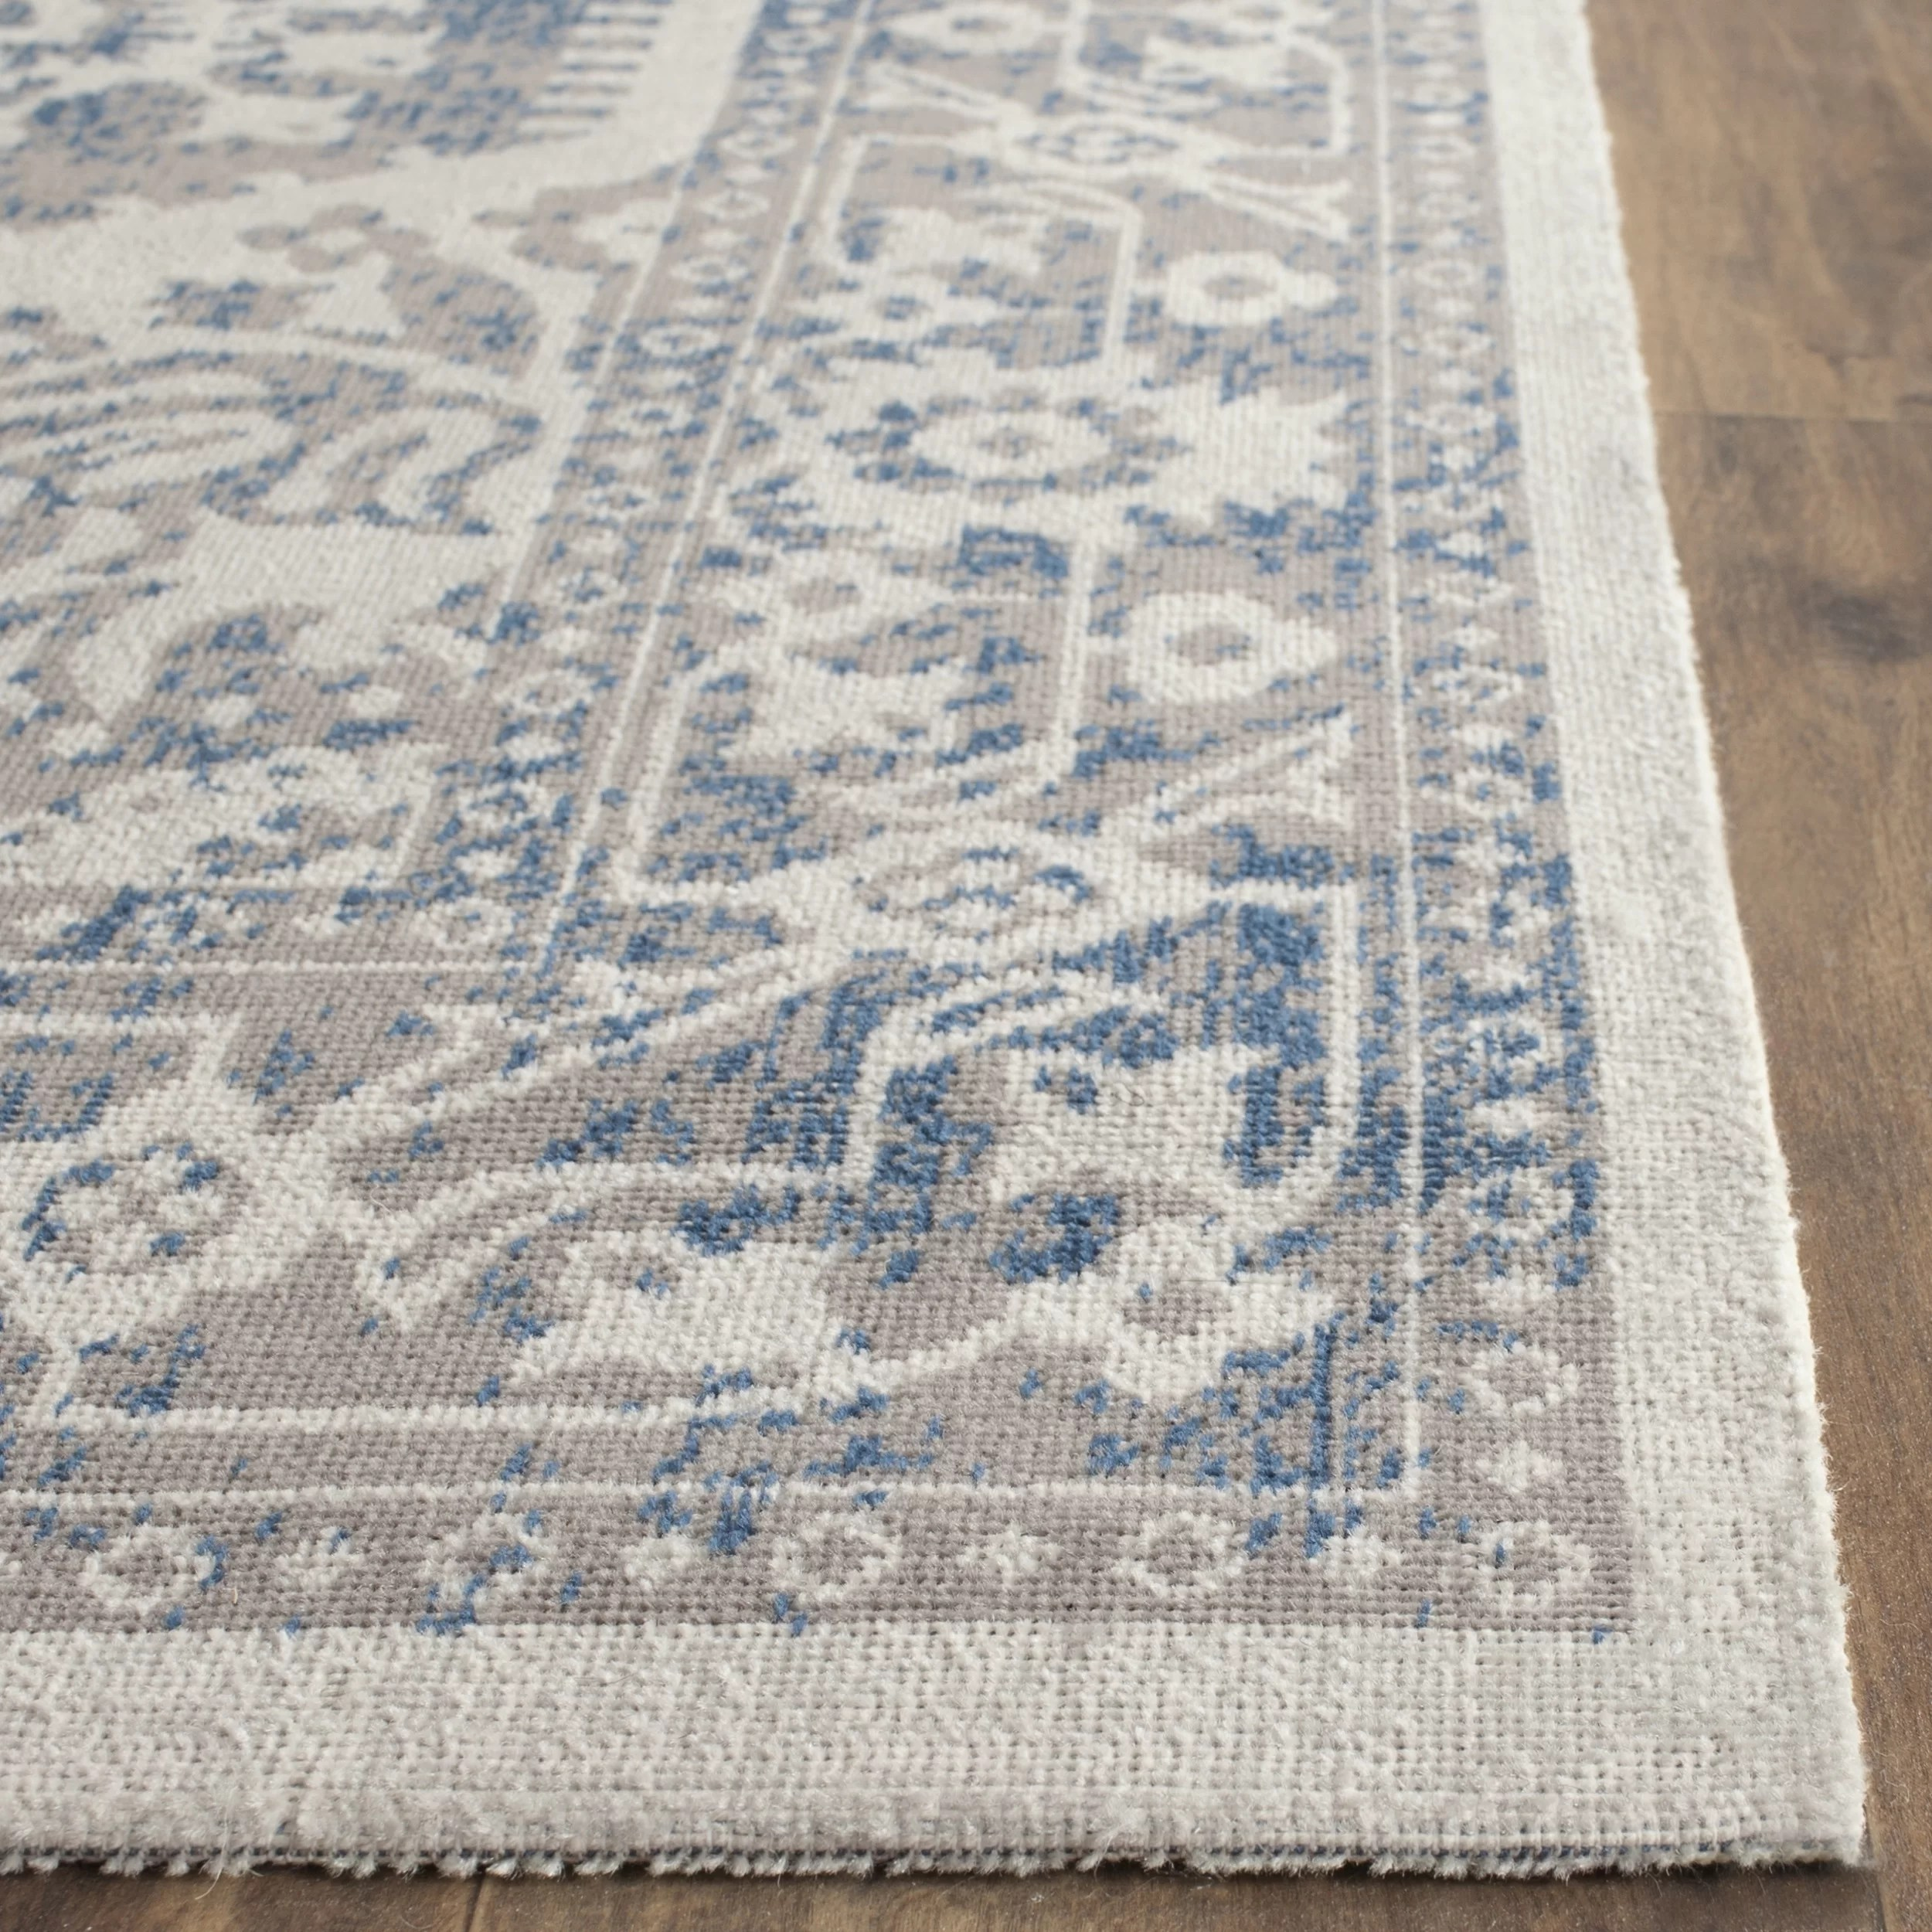 Safavieh Patina GrayBlue Area Rug  Reviews  Wayfair